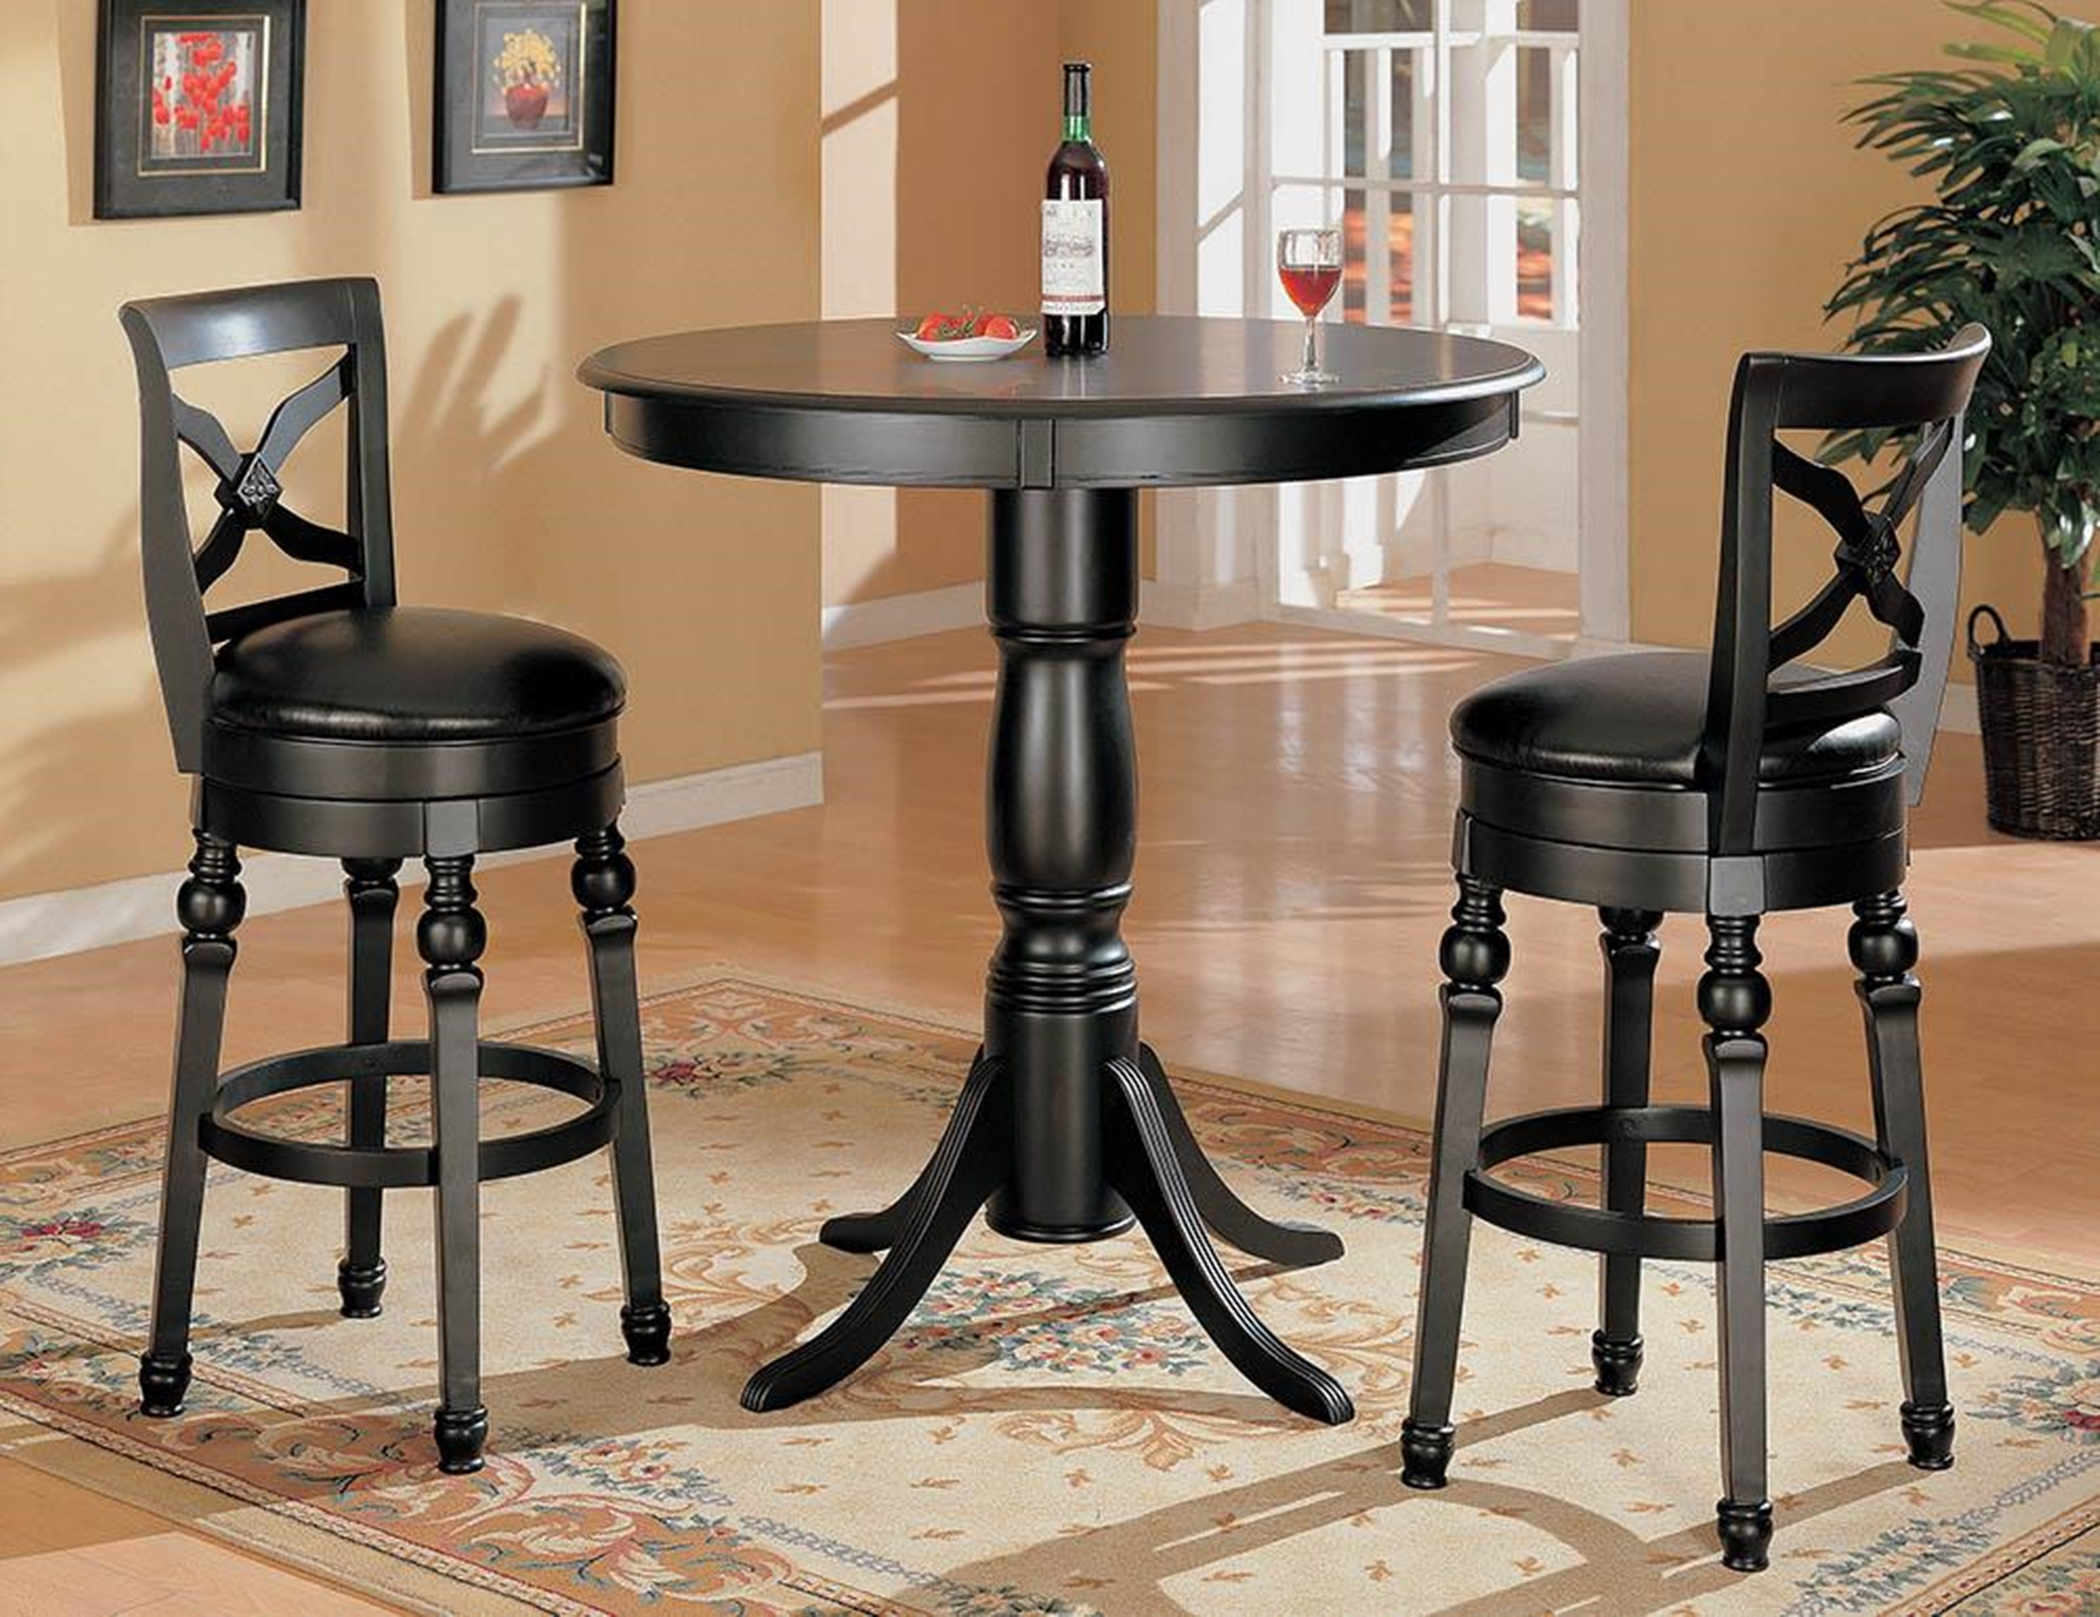 Lathrop Black Round Bar Table